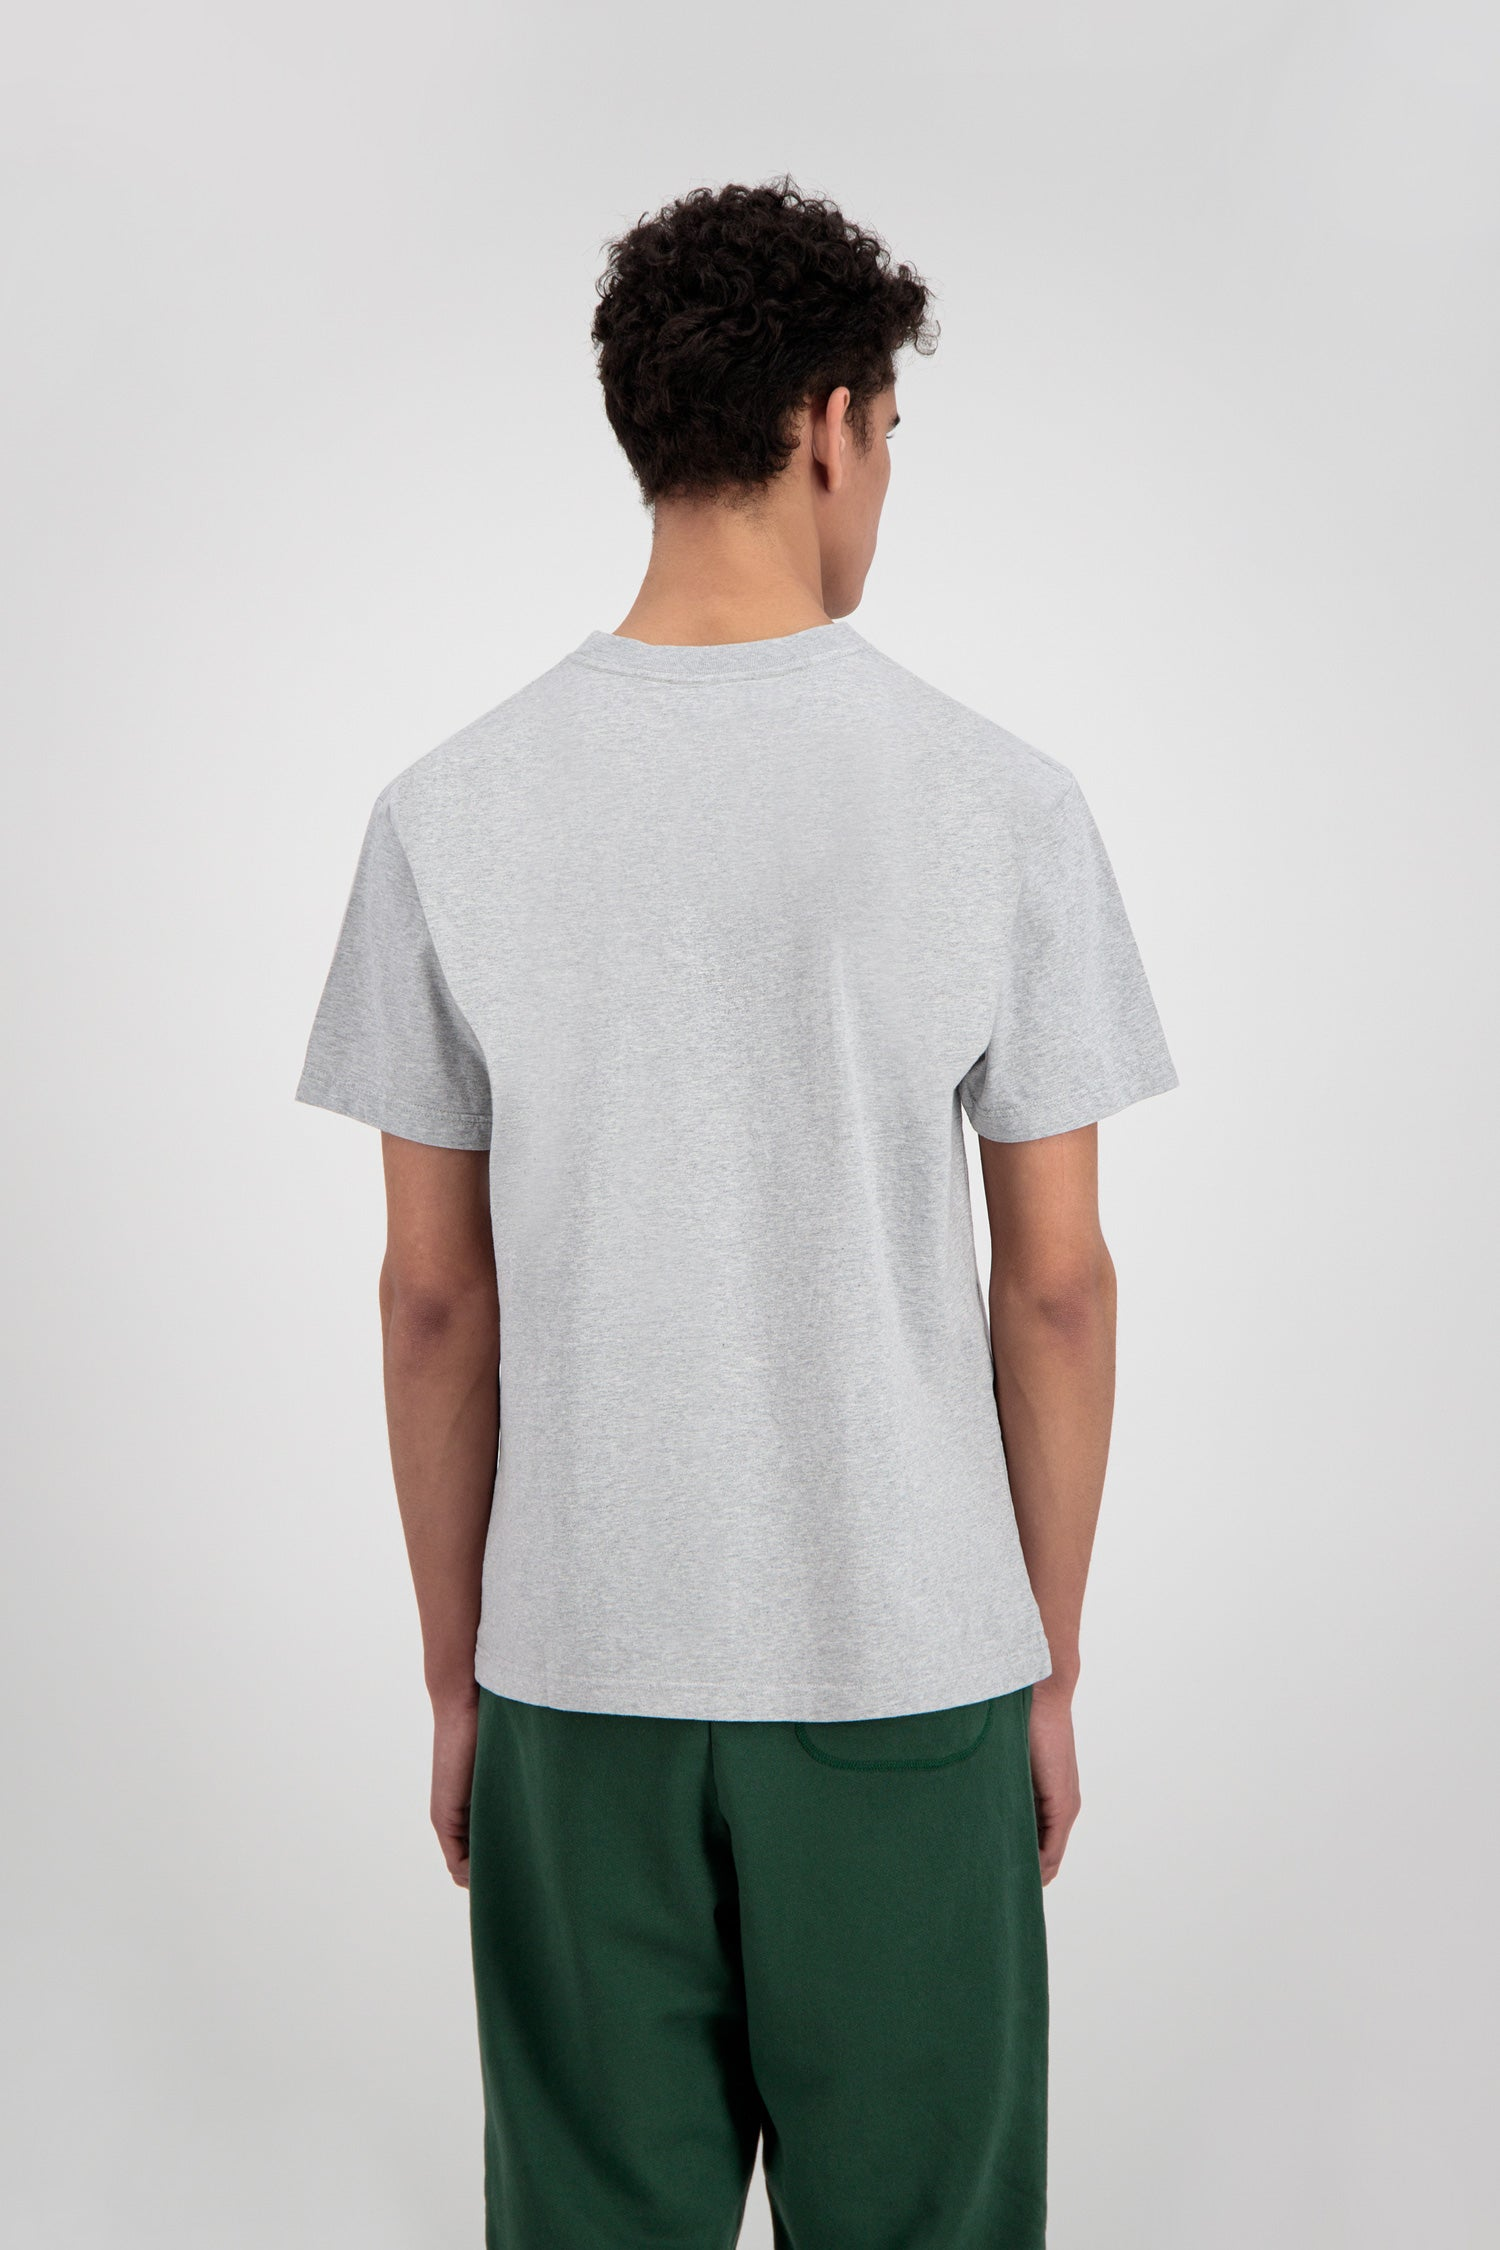 ØLÅF Italic Tee <br>Heather Grey